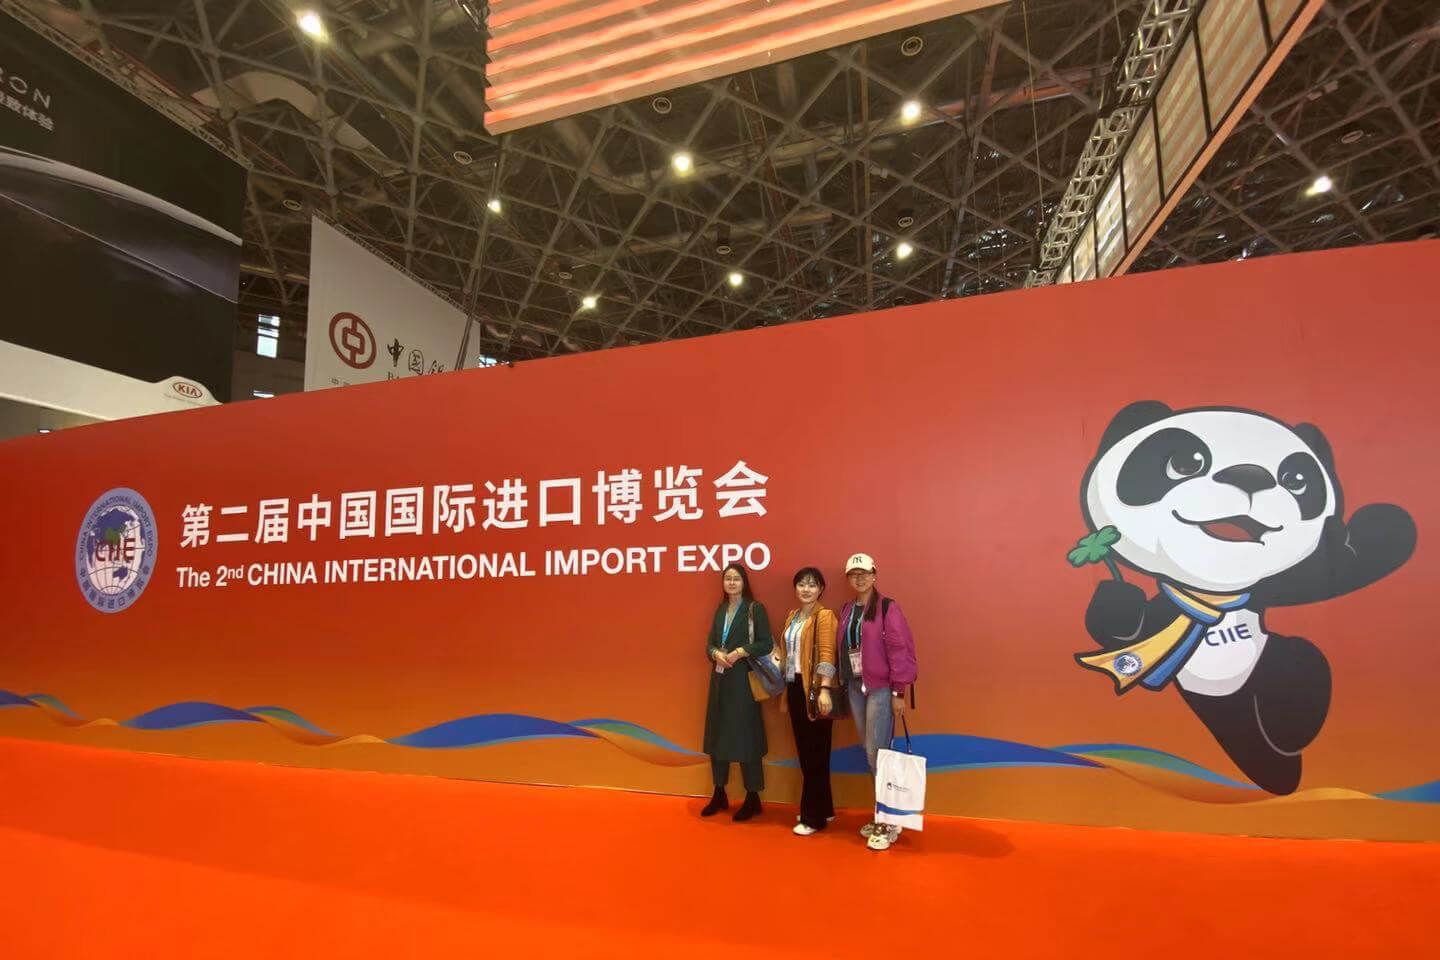 On November 8th, 2019, representatives of our company participated in China Import Expo